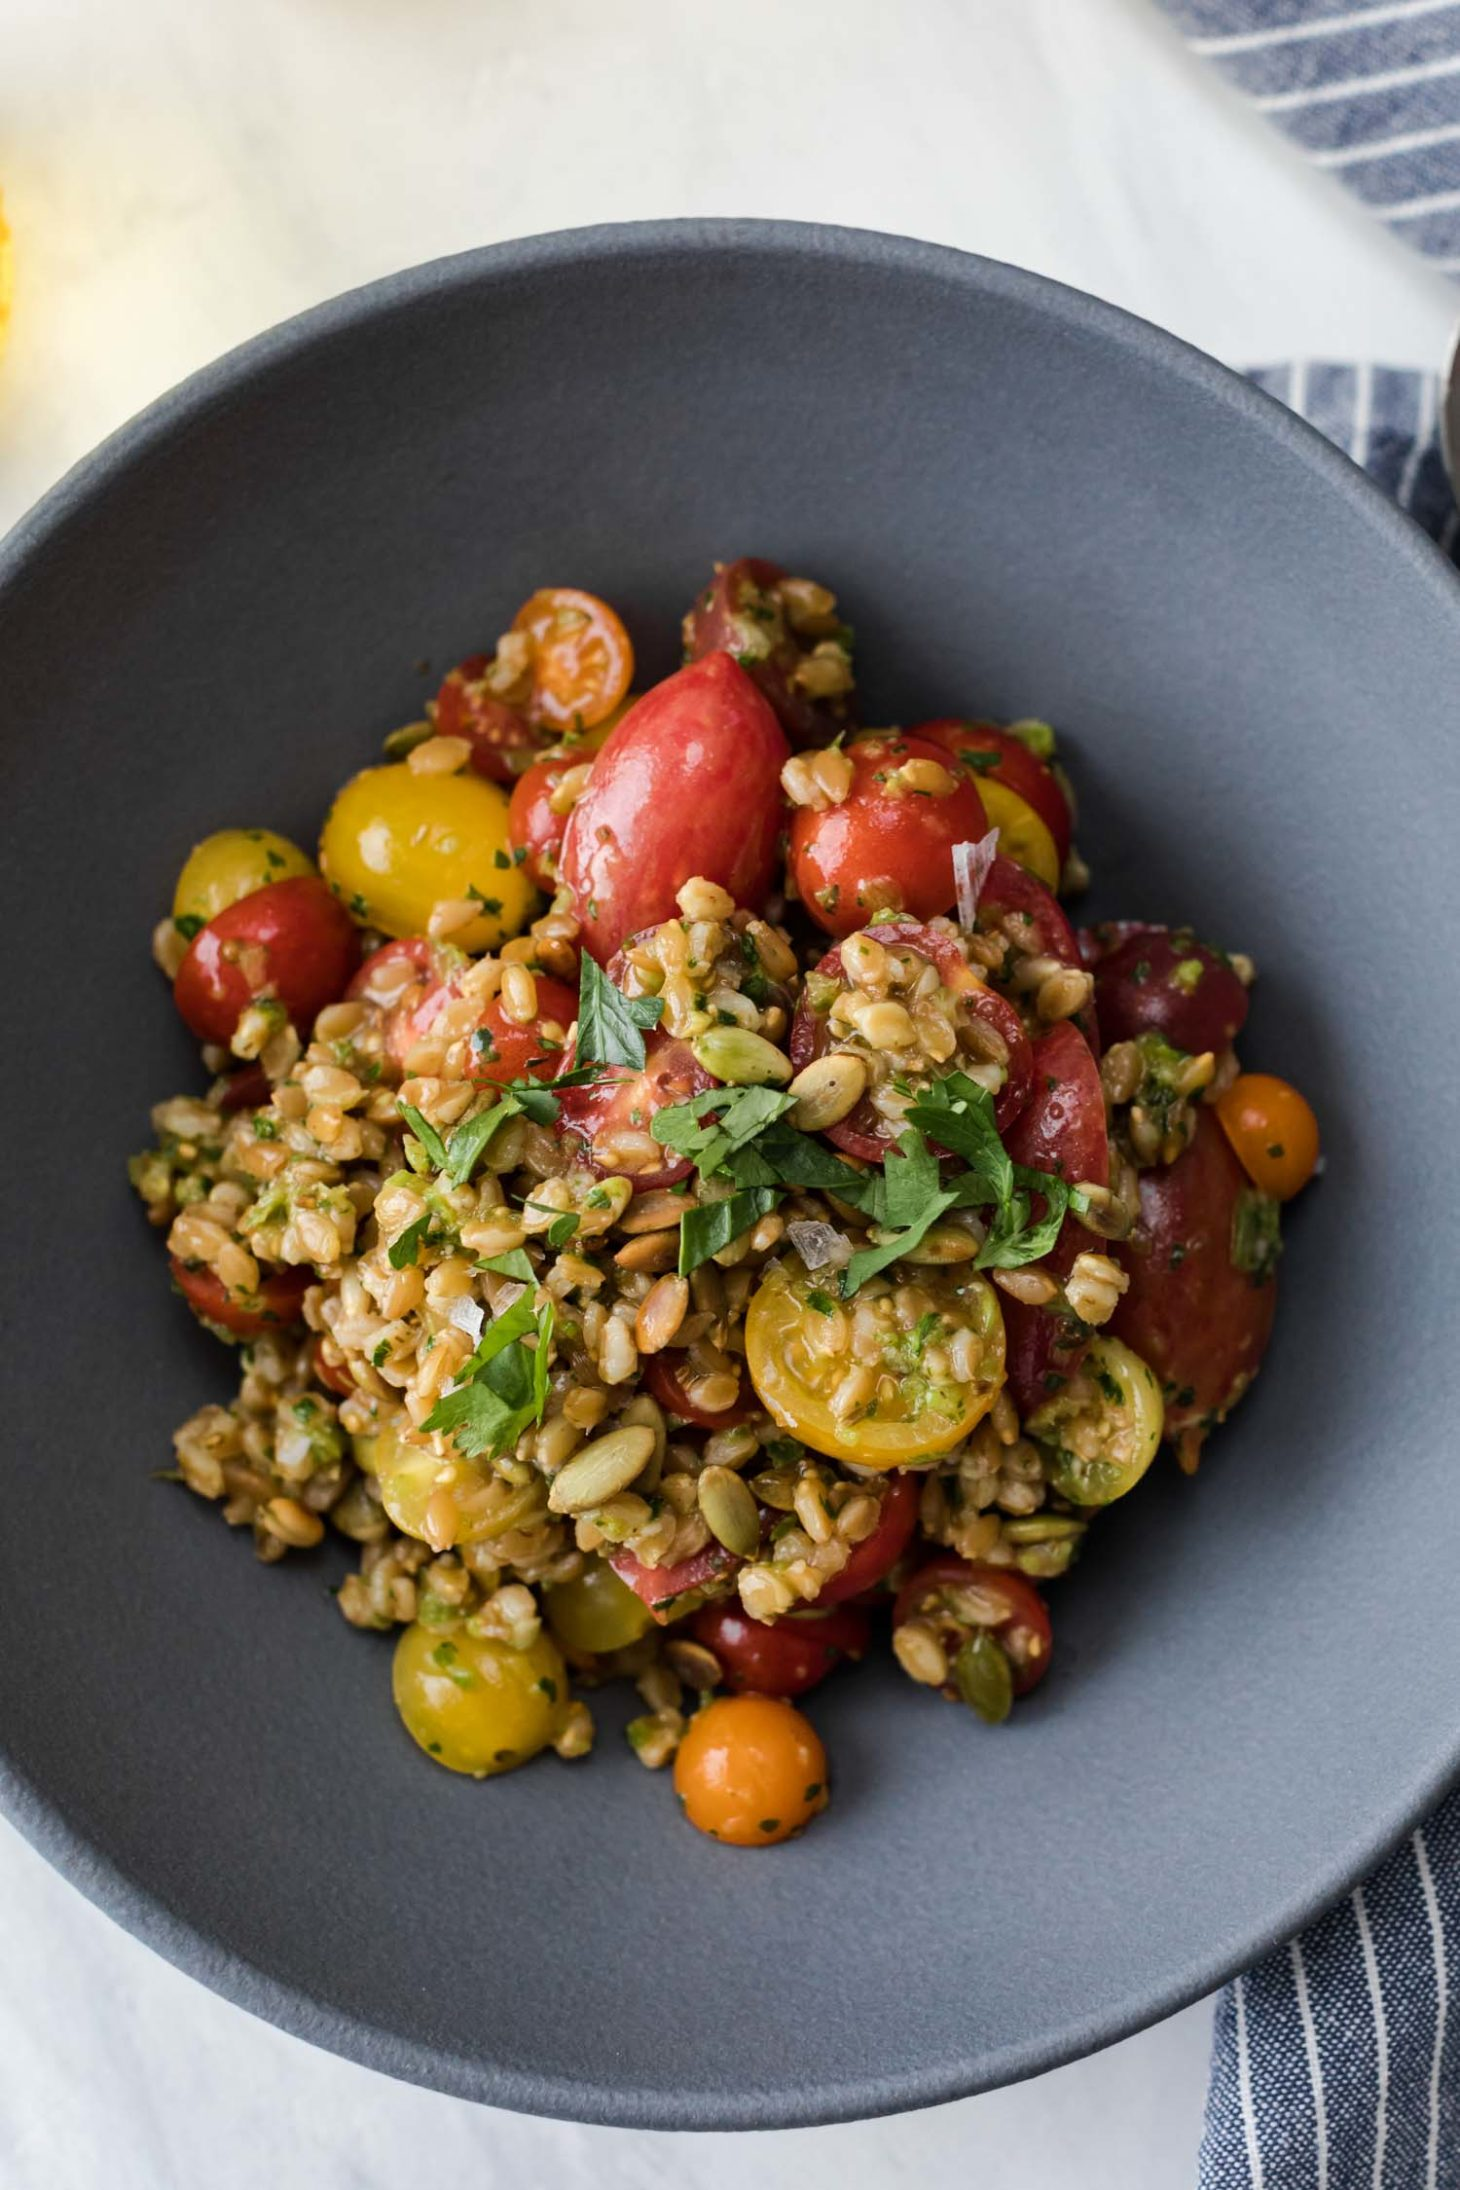 Overhead, close-up shot of a harissa tomato salad made with cooked farro, fresh grape tomatoes, and green harissa.